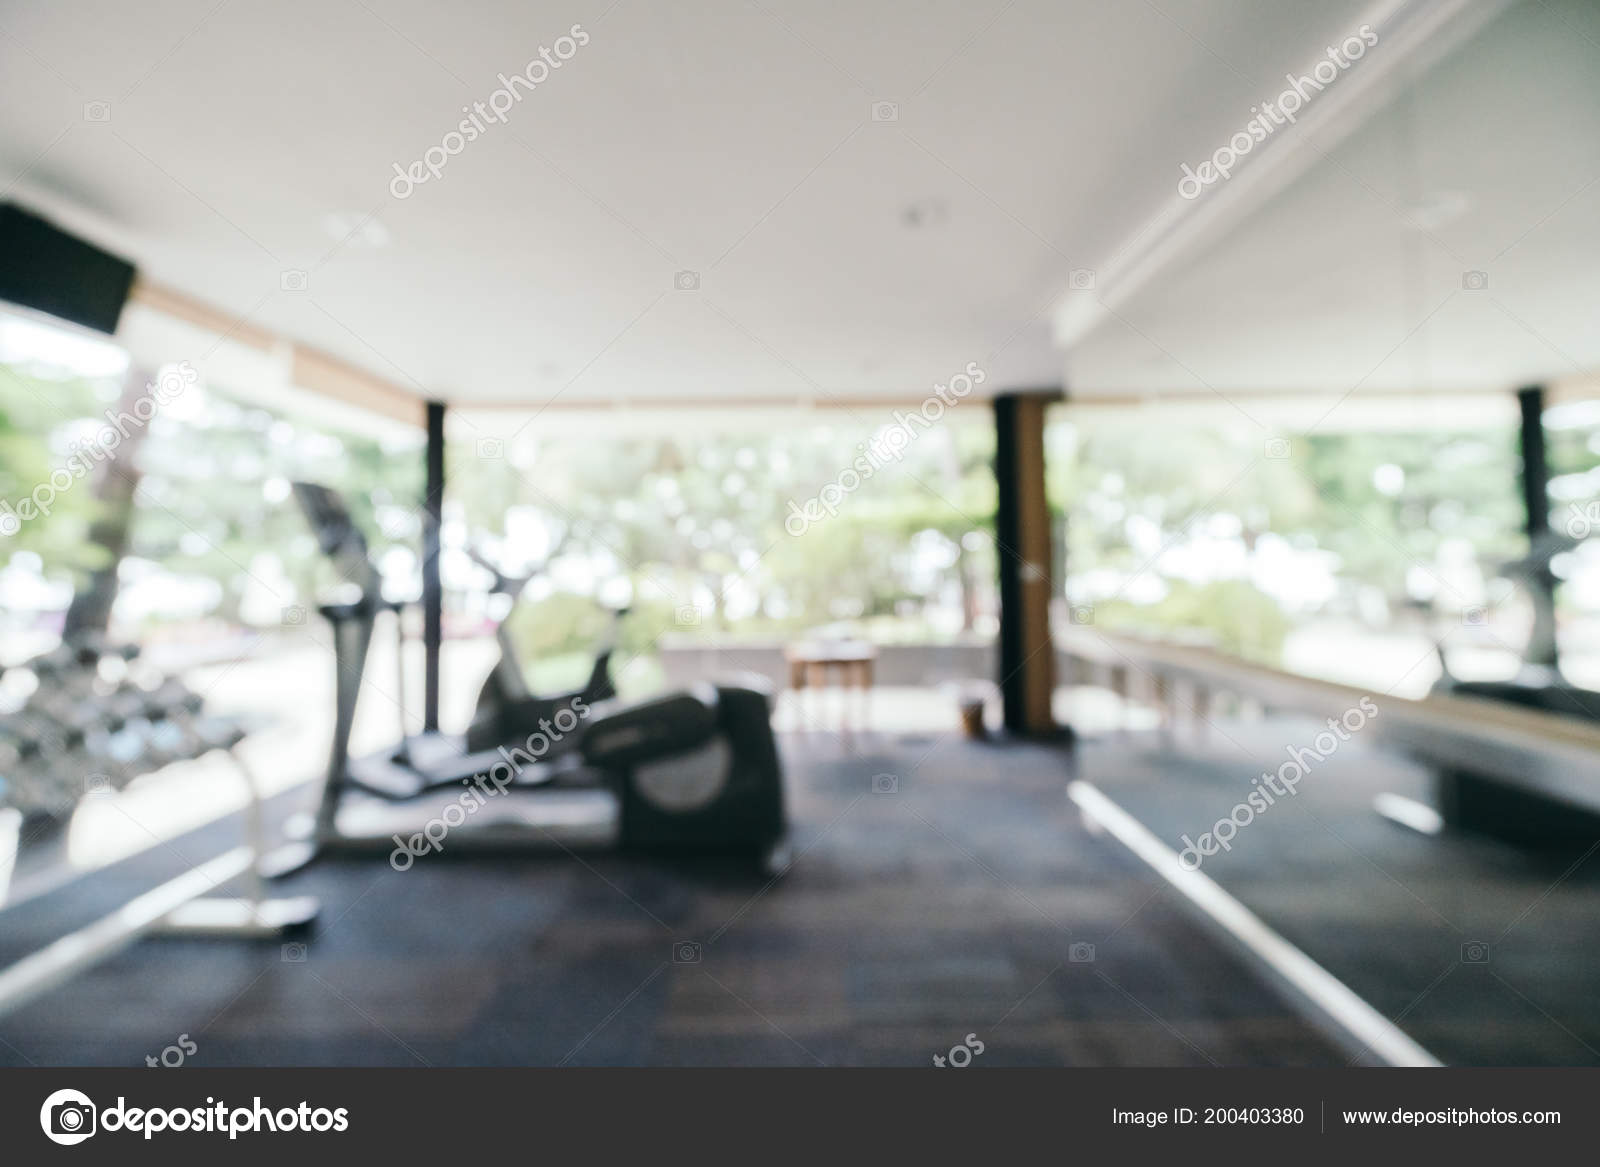 Abstract blur fitness gym room interior background abstract blur